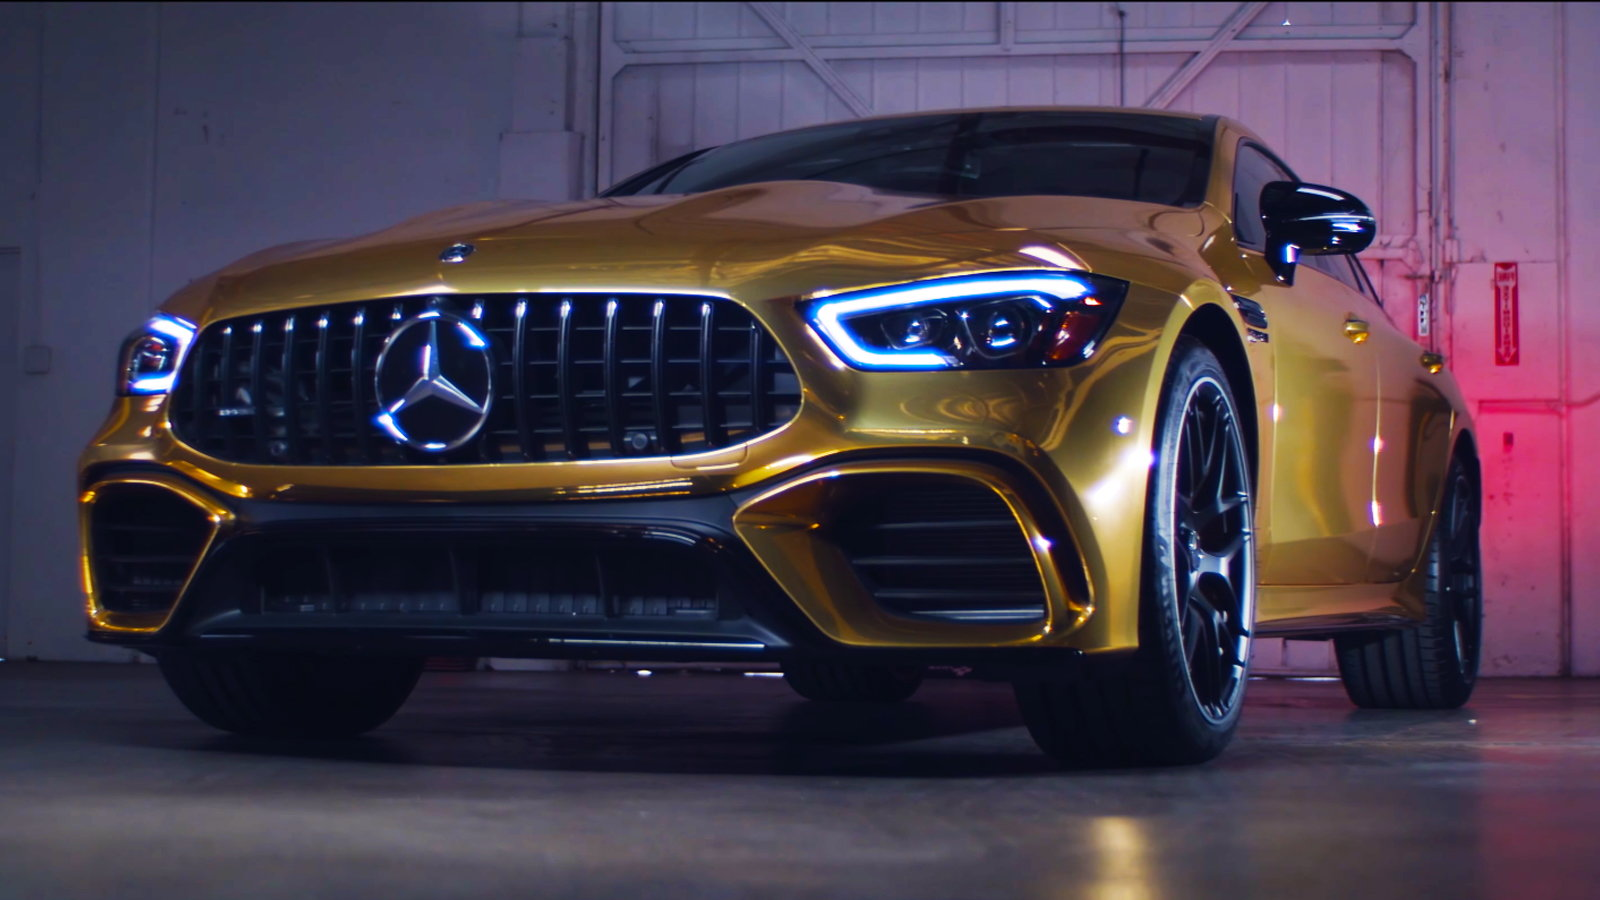 Gold Wrapped AMG GT Attends the Oscars